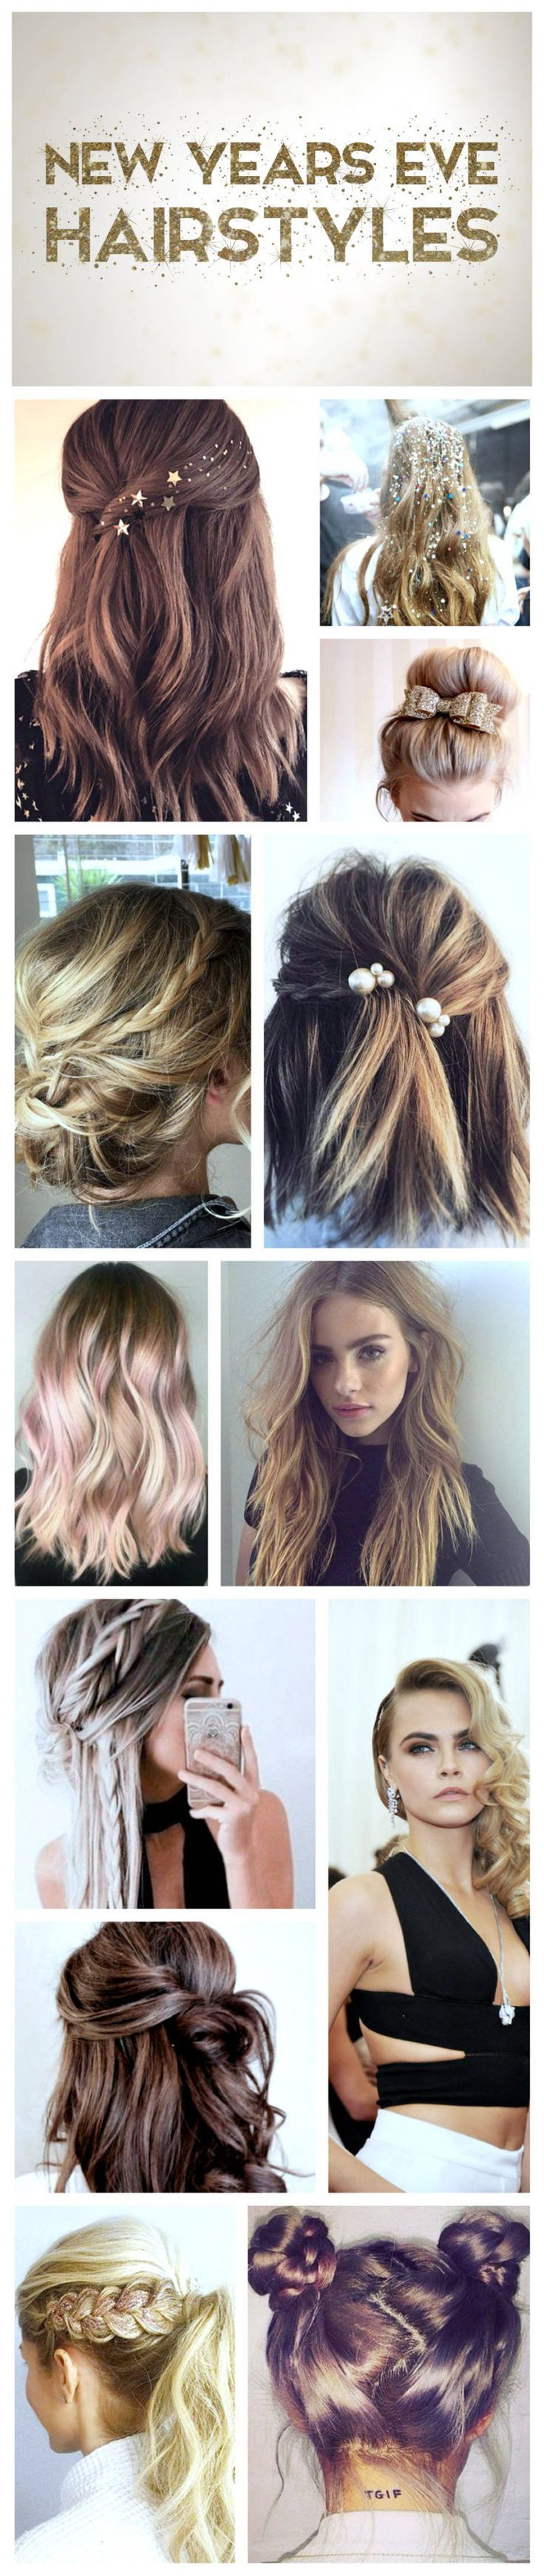 New Years Eve Hairstyle Ideas Hair Styles Long Hair Styles Nye Hairstyles